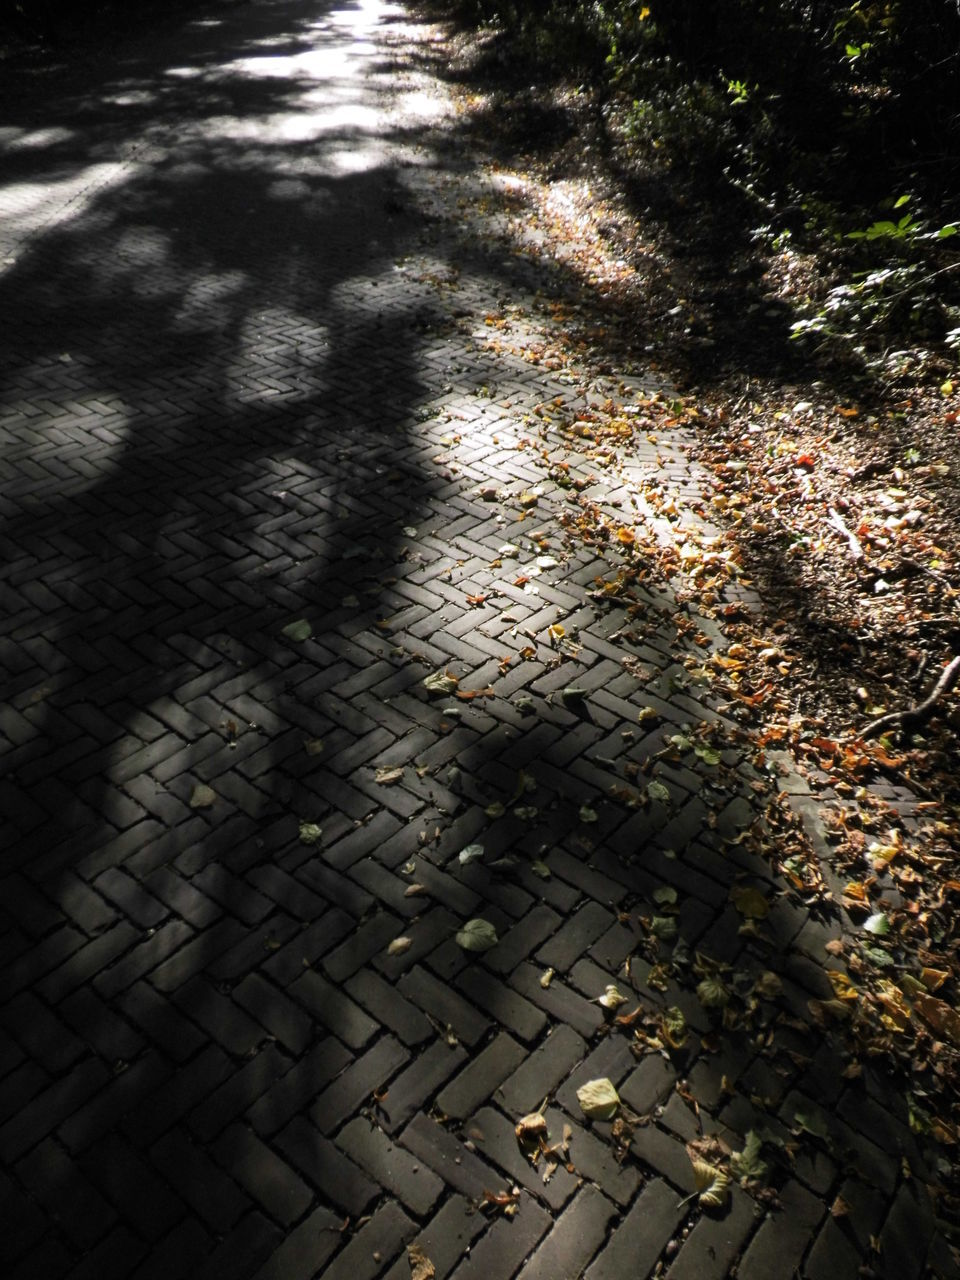 high angle view, day, sunlight, shadow, outdoors, no people, leaf, nature, close-up